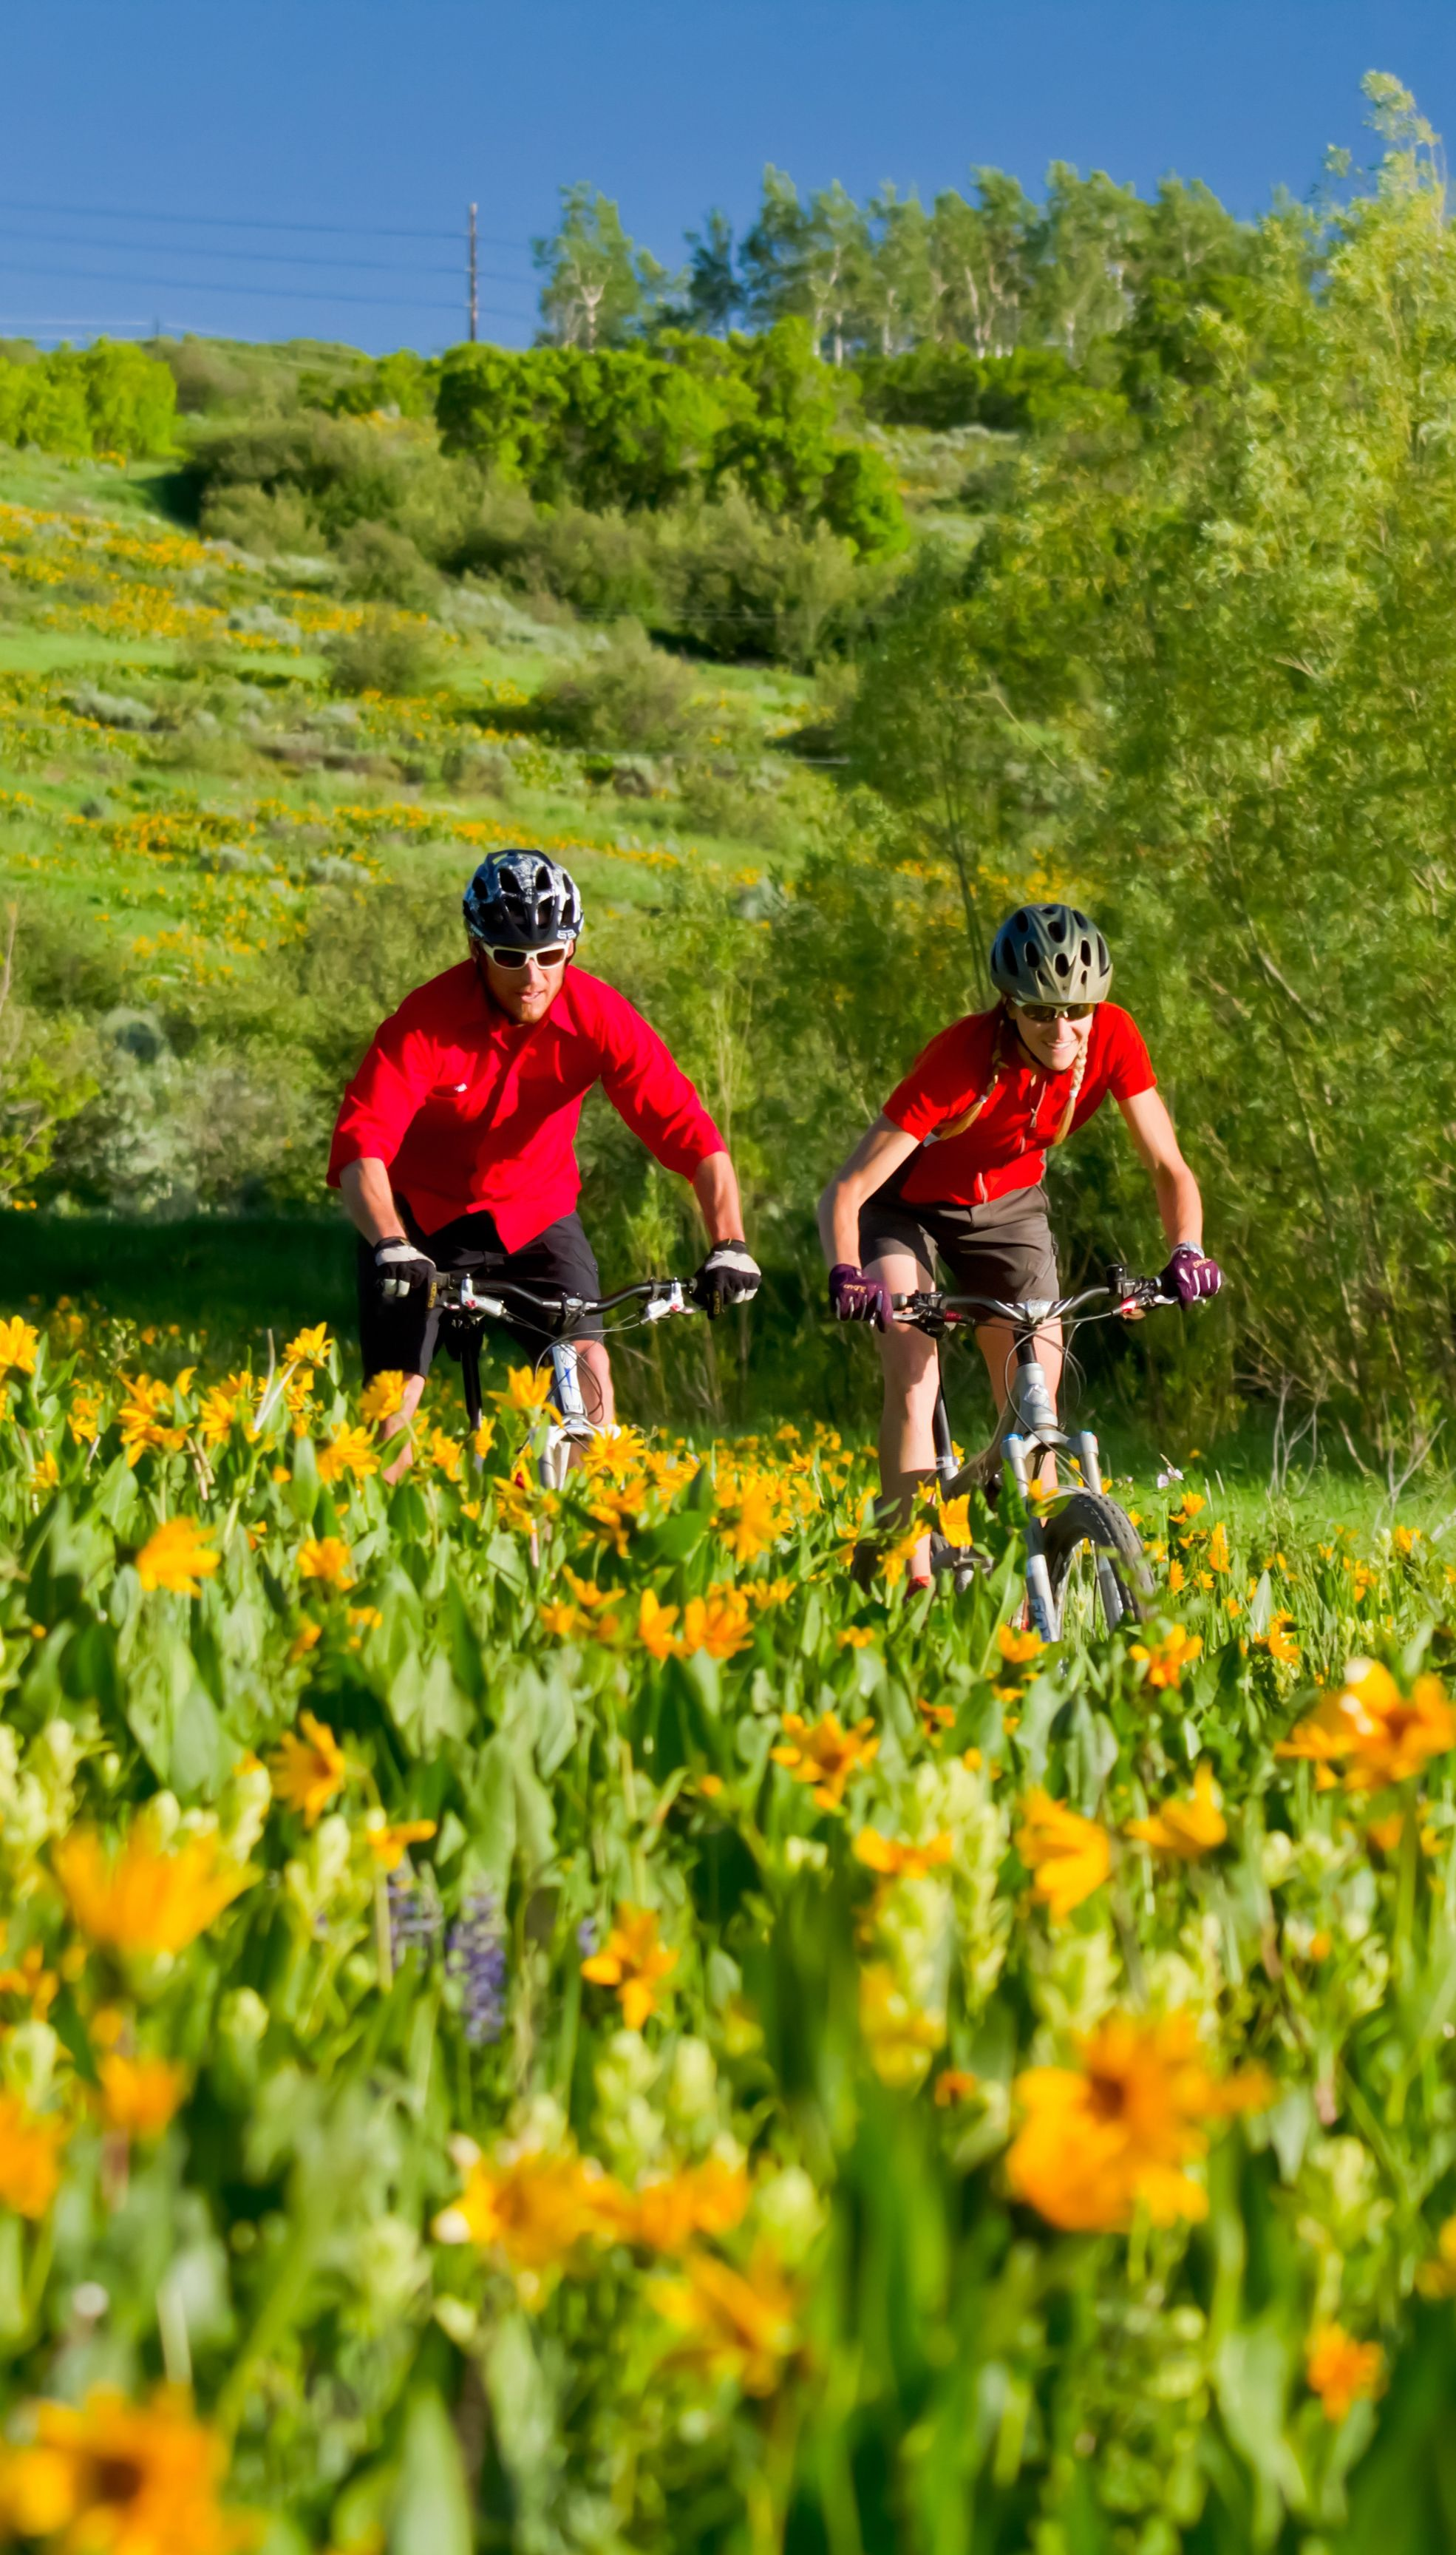 In the warmer weather, the mountains are home to extensive bike trails.